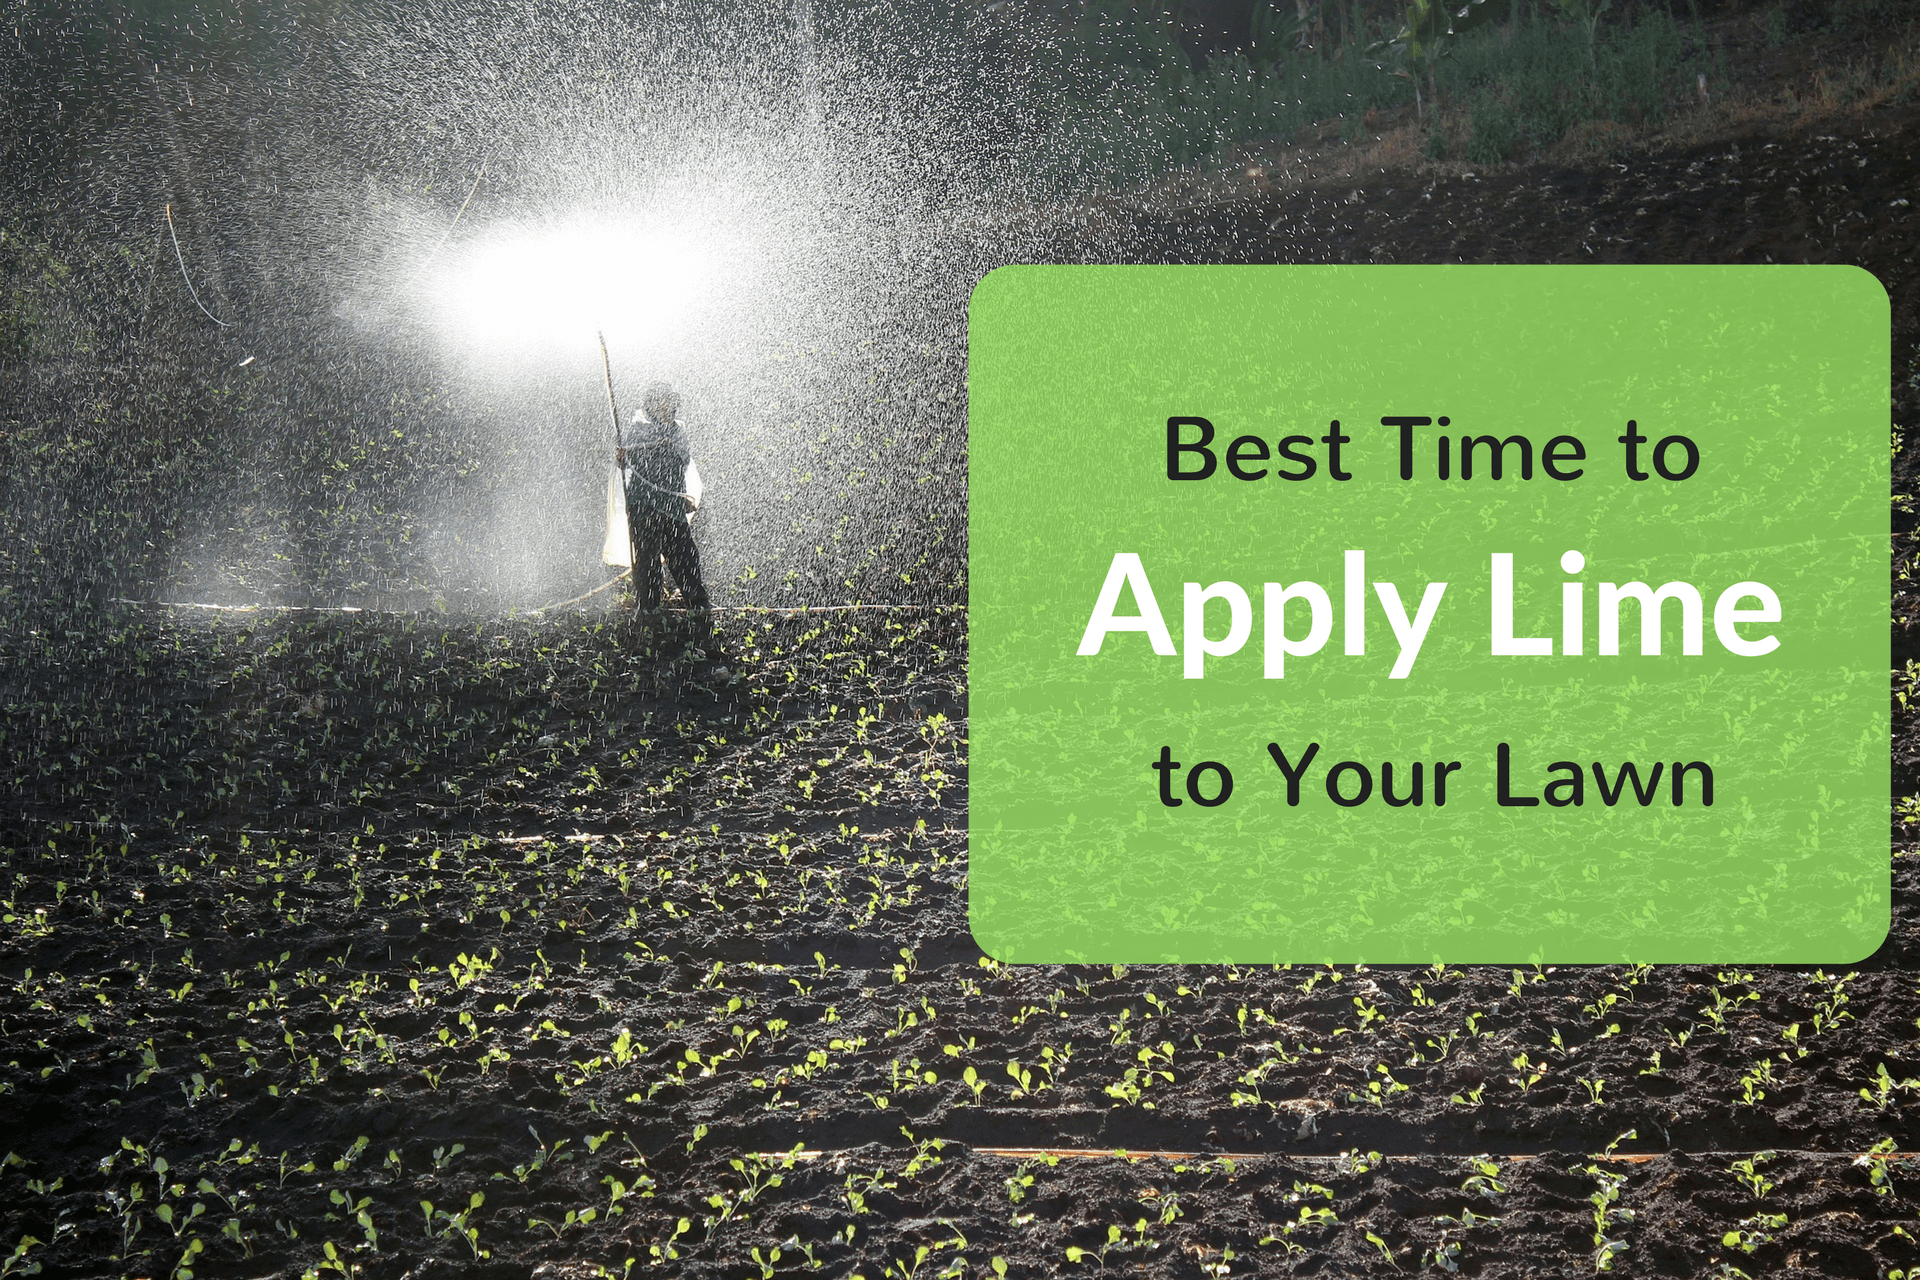 Best Time to Apply Lime to Your Lawn